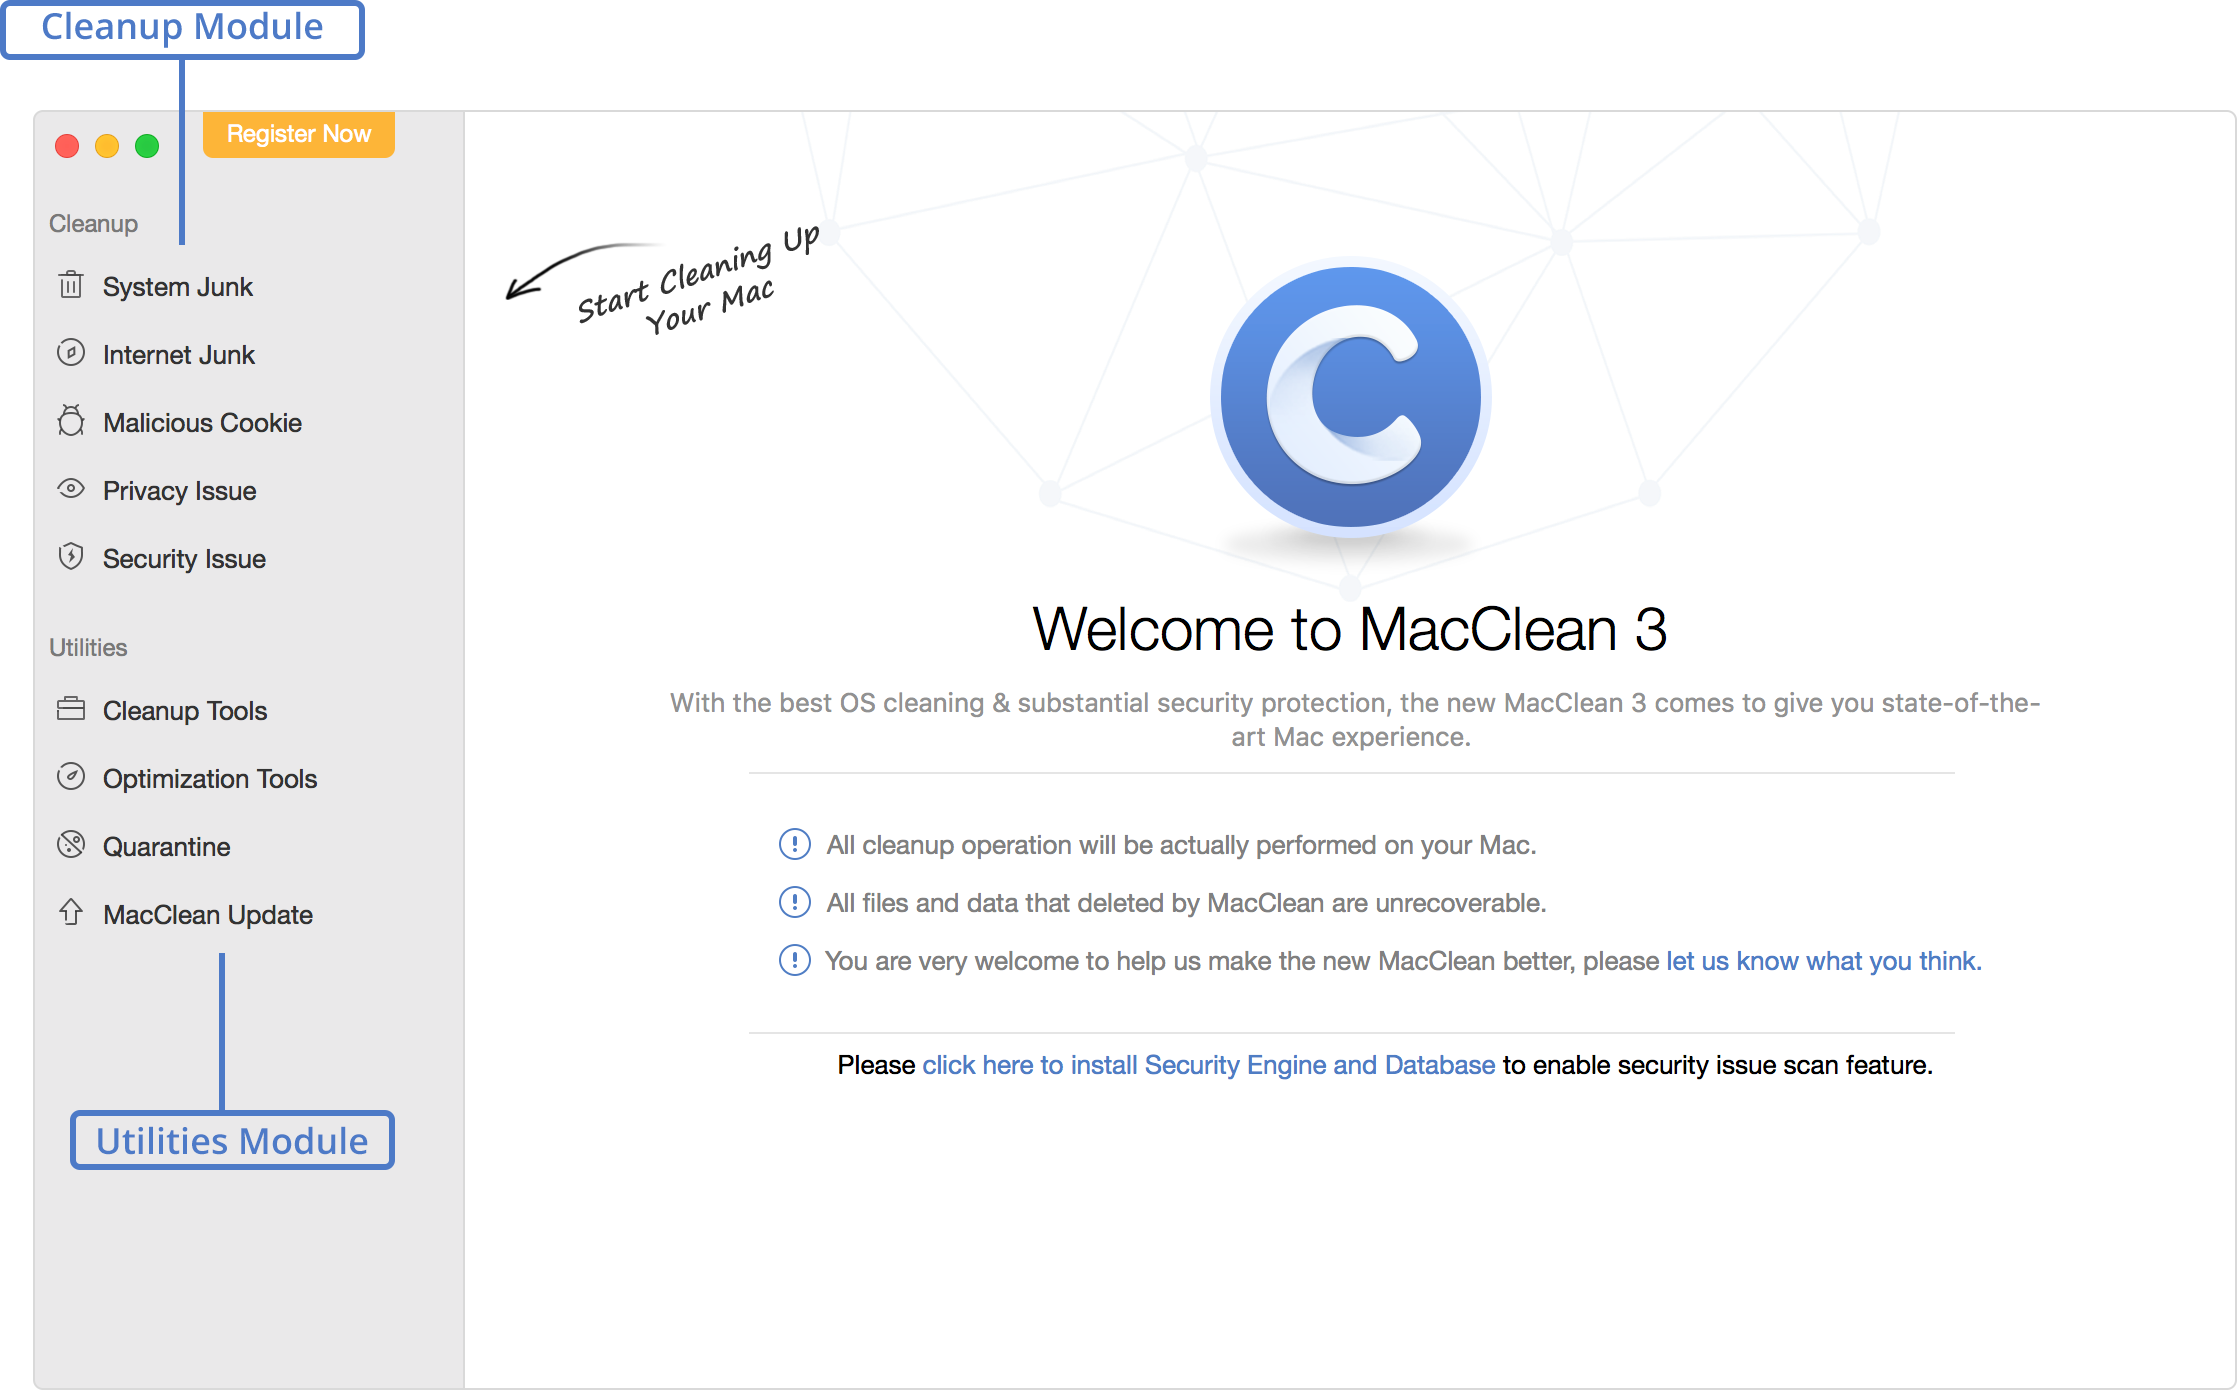 MacClean Welcome Page